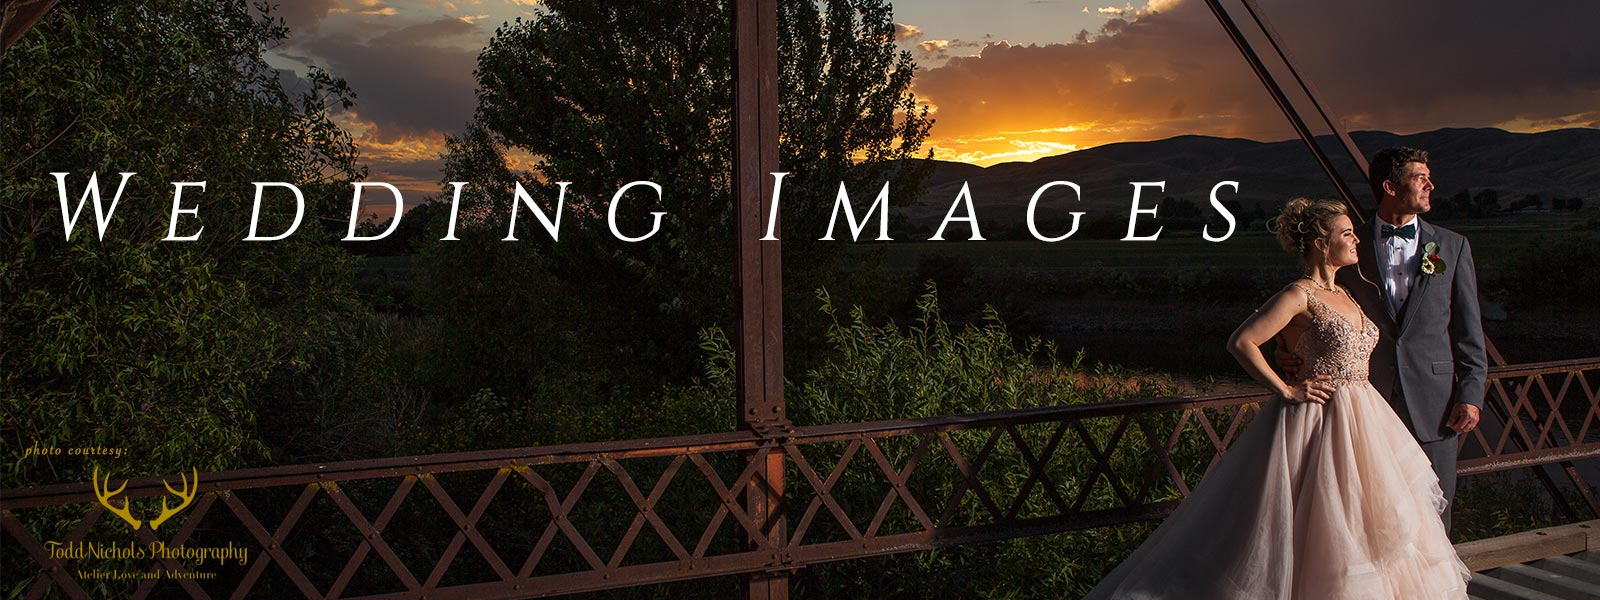 Image Galleries of Weddings at the Lazy Bear Ranch